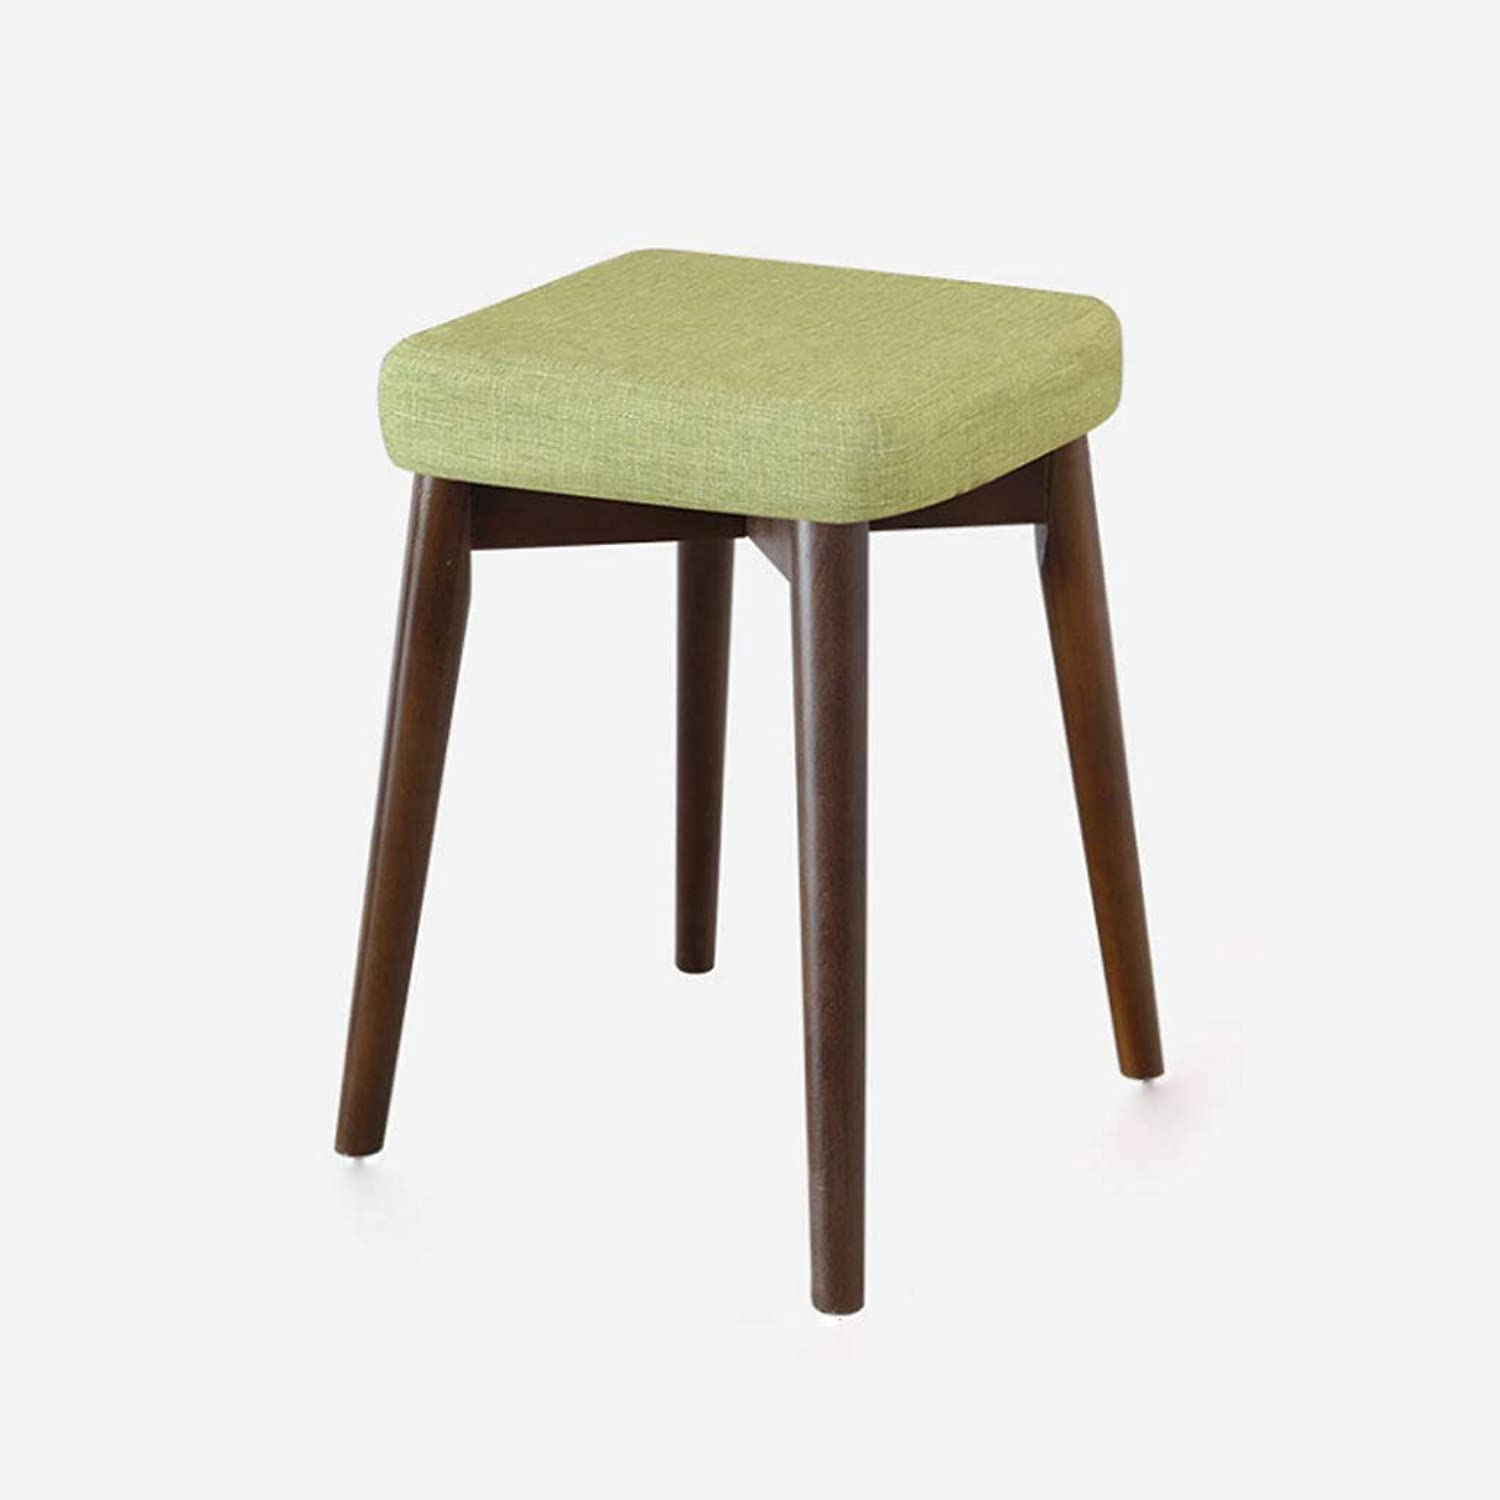 NJ STOOLS- Dining Stool Fabric Dressing Stool Creative Stool Simple Home High Bench (color   Green, Size   32.5x32.5x44cm)